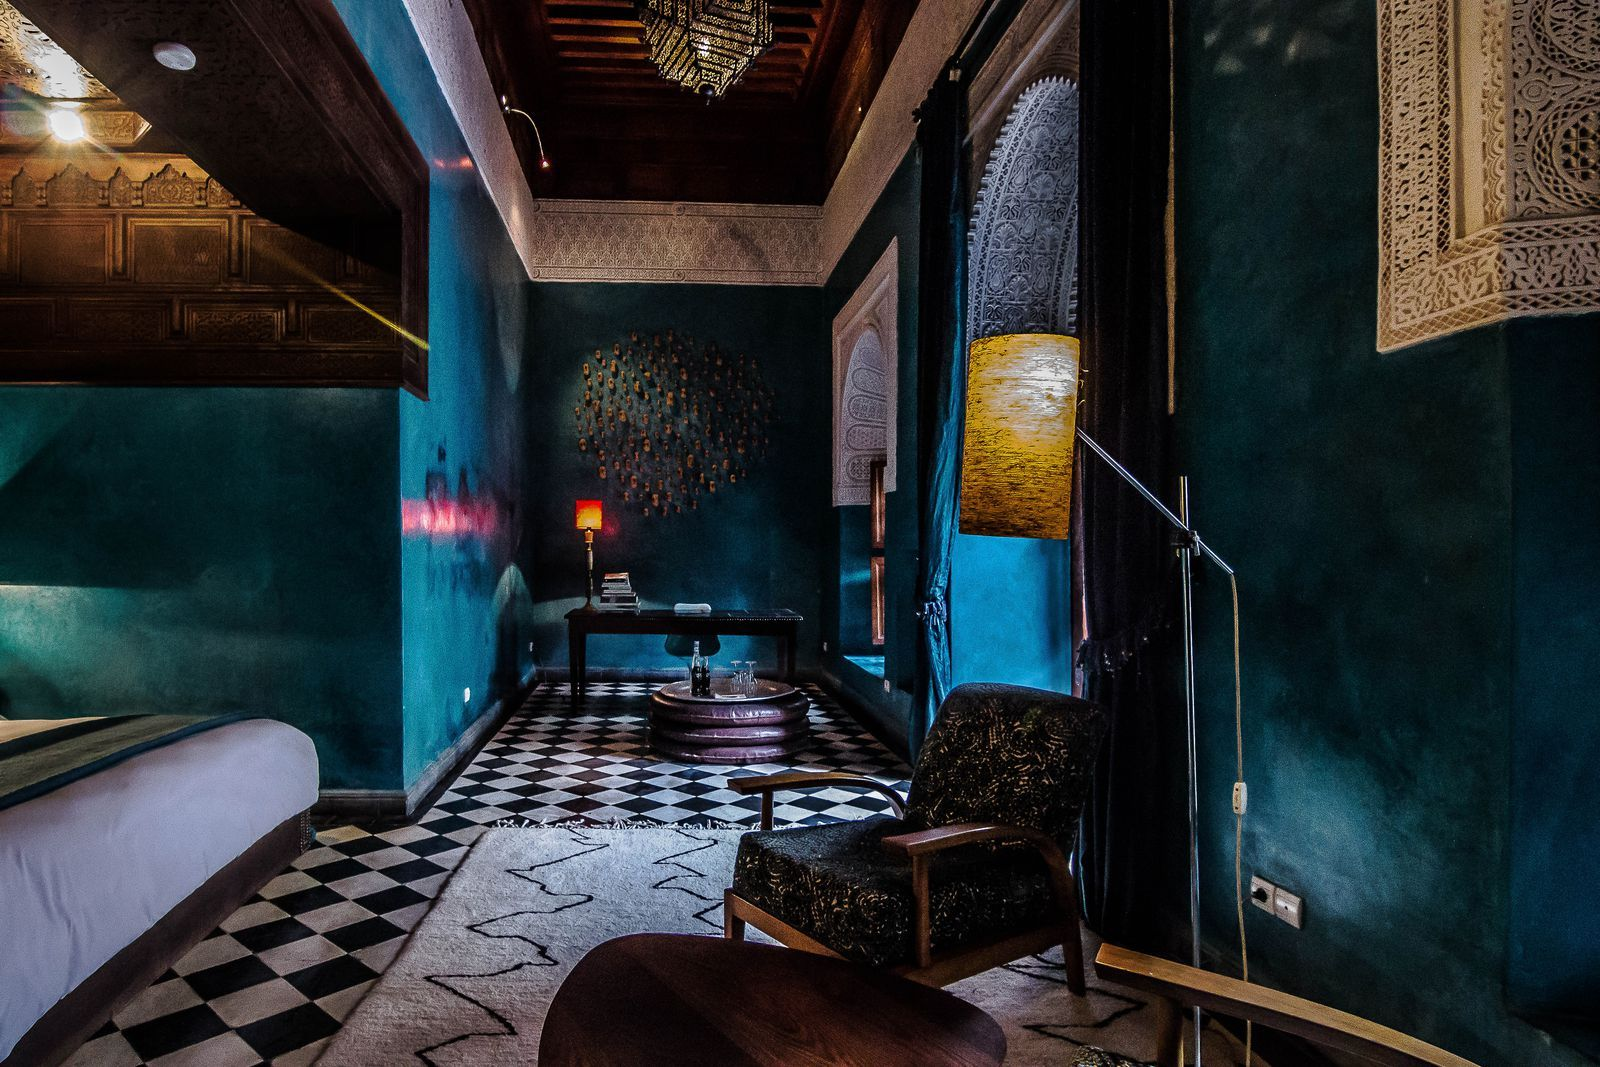 14 Of The Most Magical Riads In Marrakech Marrakech Hotel Marrakech Architectural Digest